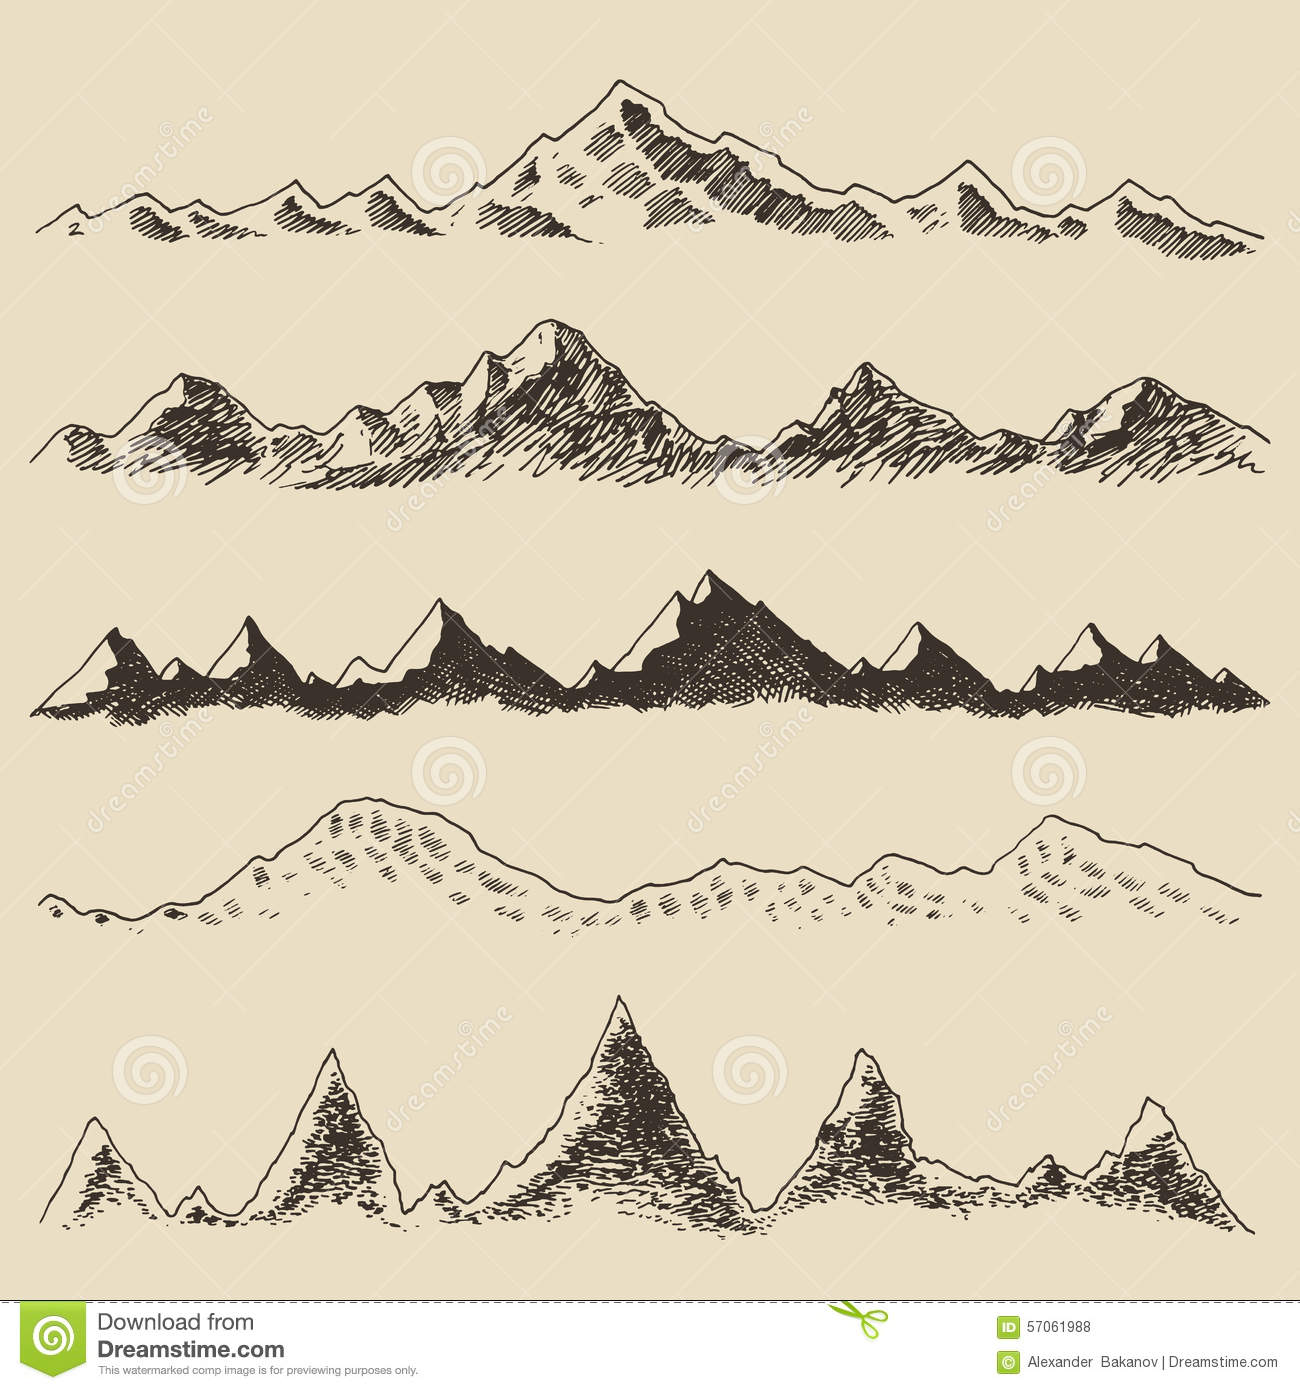 how to draw the mountains